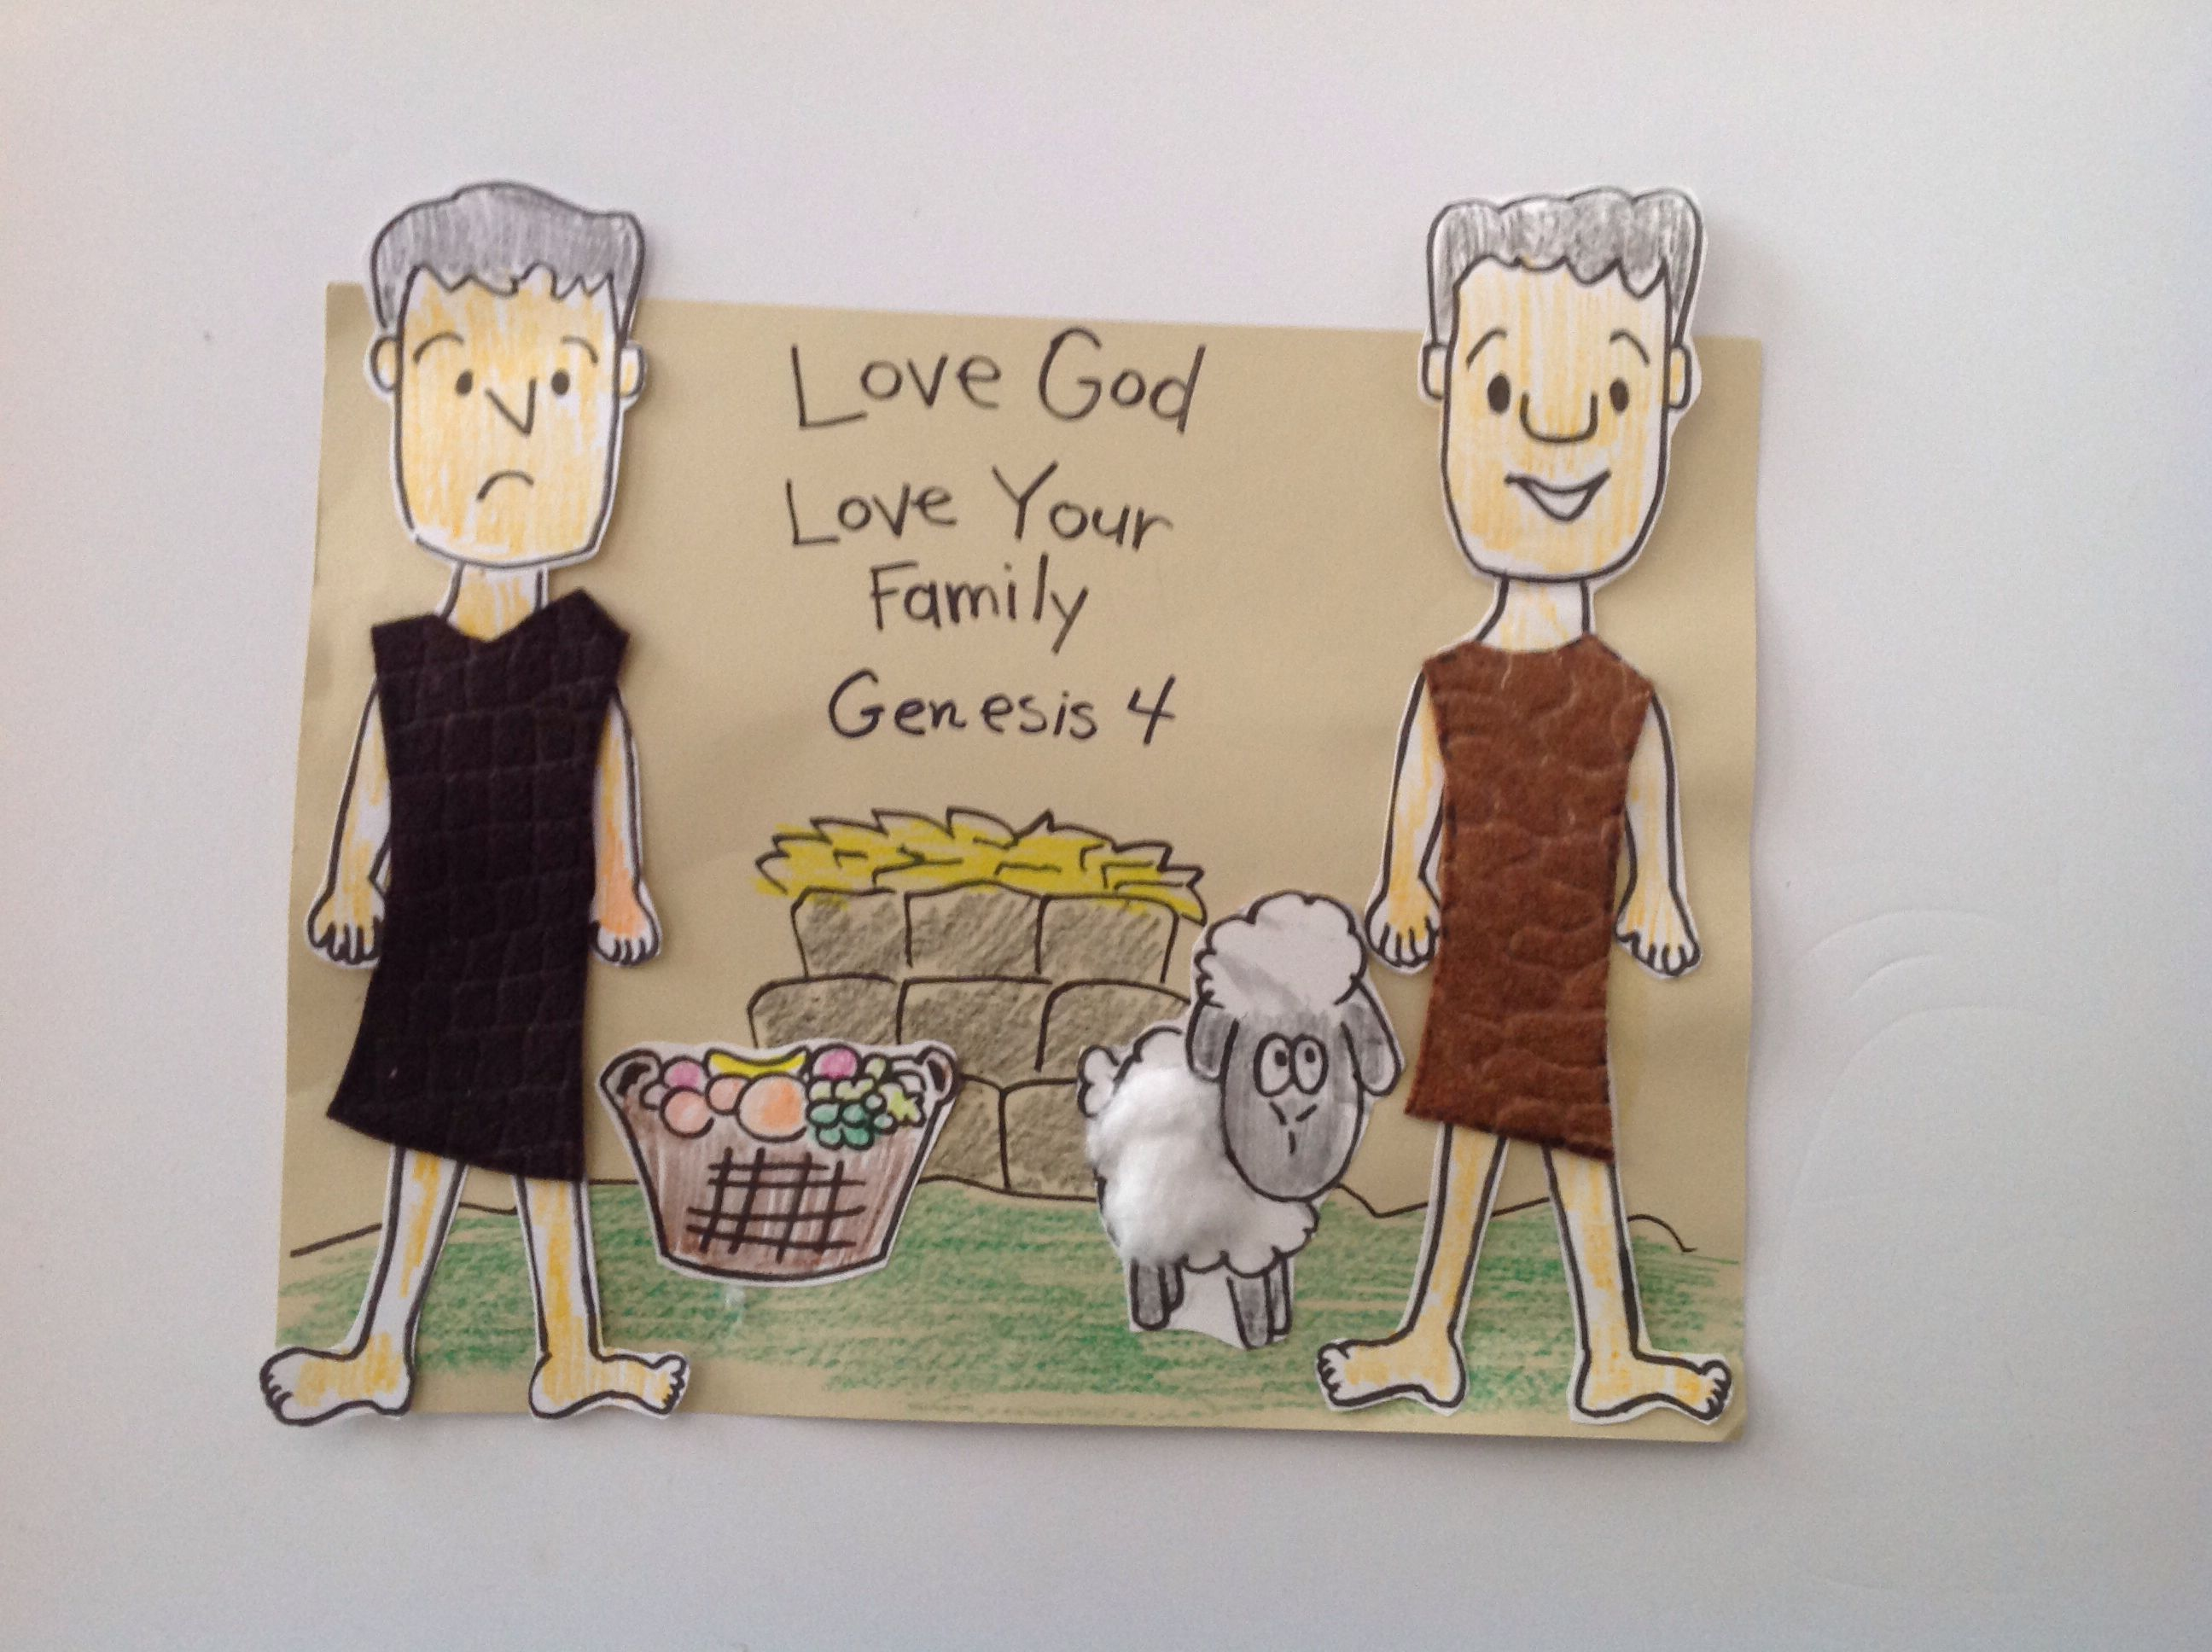 Crafts for sunday school lessons - Cain And Abel Craft Idea This Craft Idea Will Help You Prepare Your Sunday School Lesson On Genesis On The Bible Story Of Cain And Abel